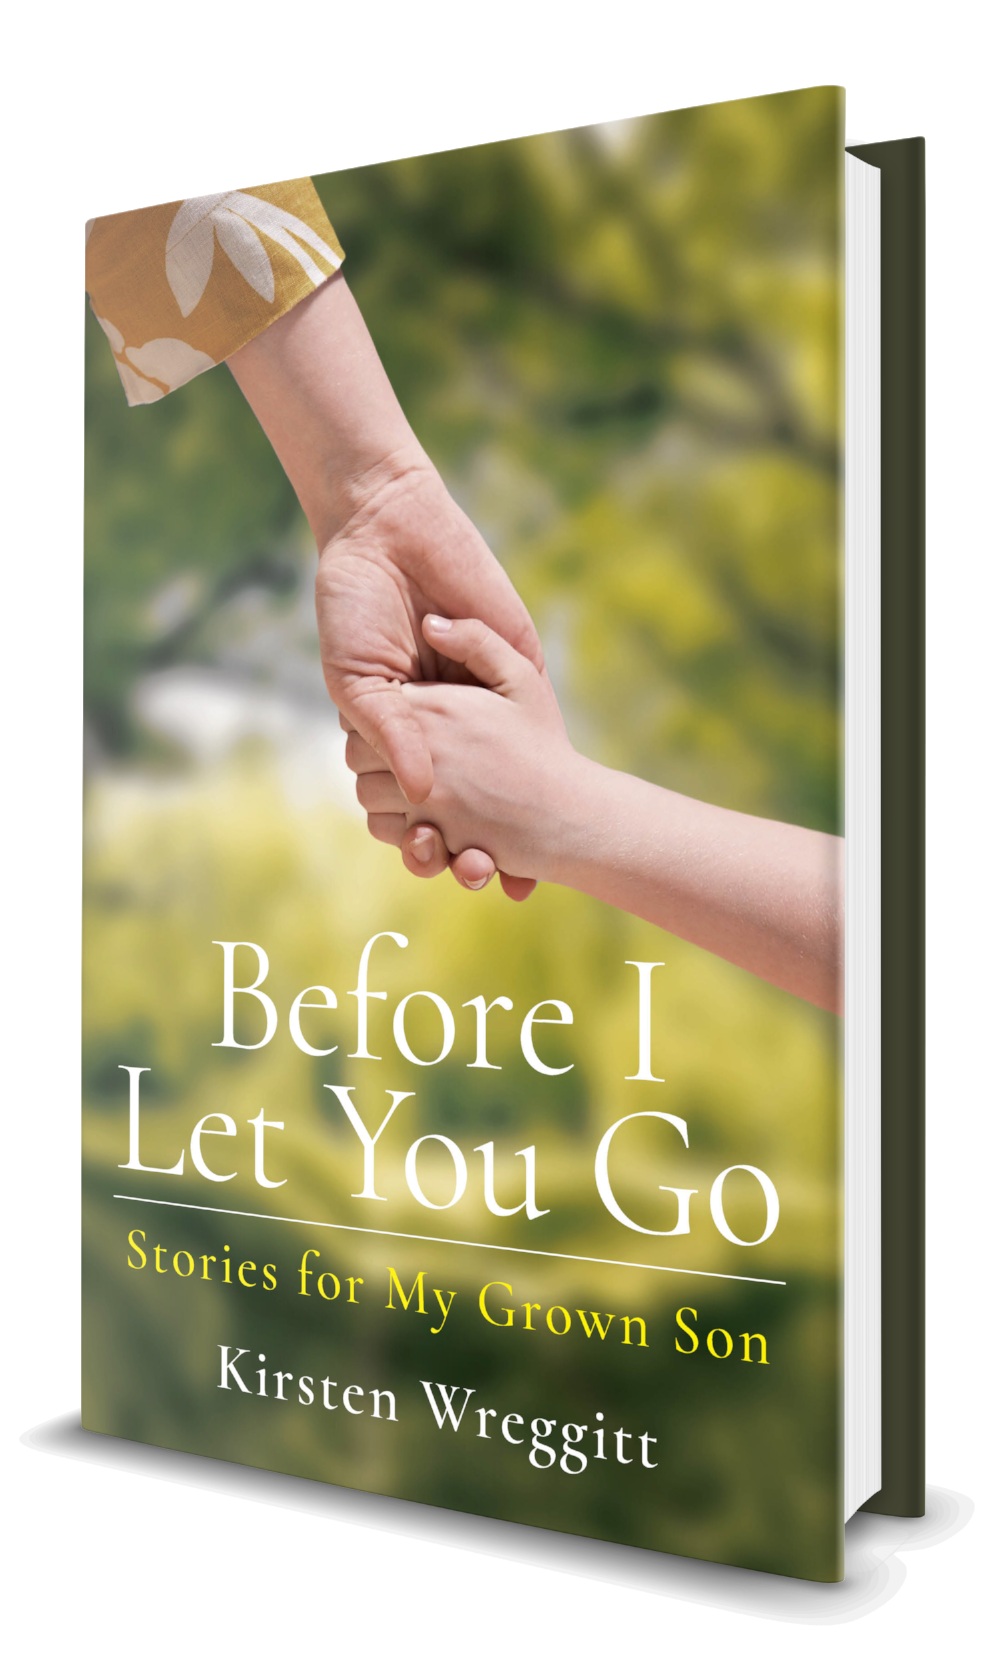 Before I Let You Go Kirsten Wreggitt book